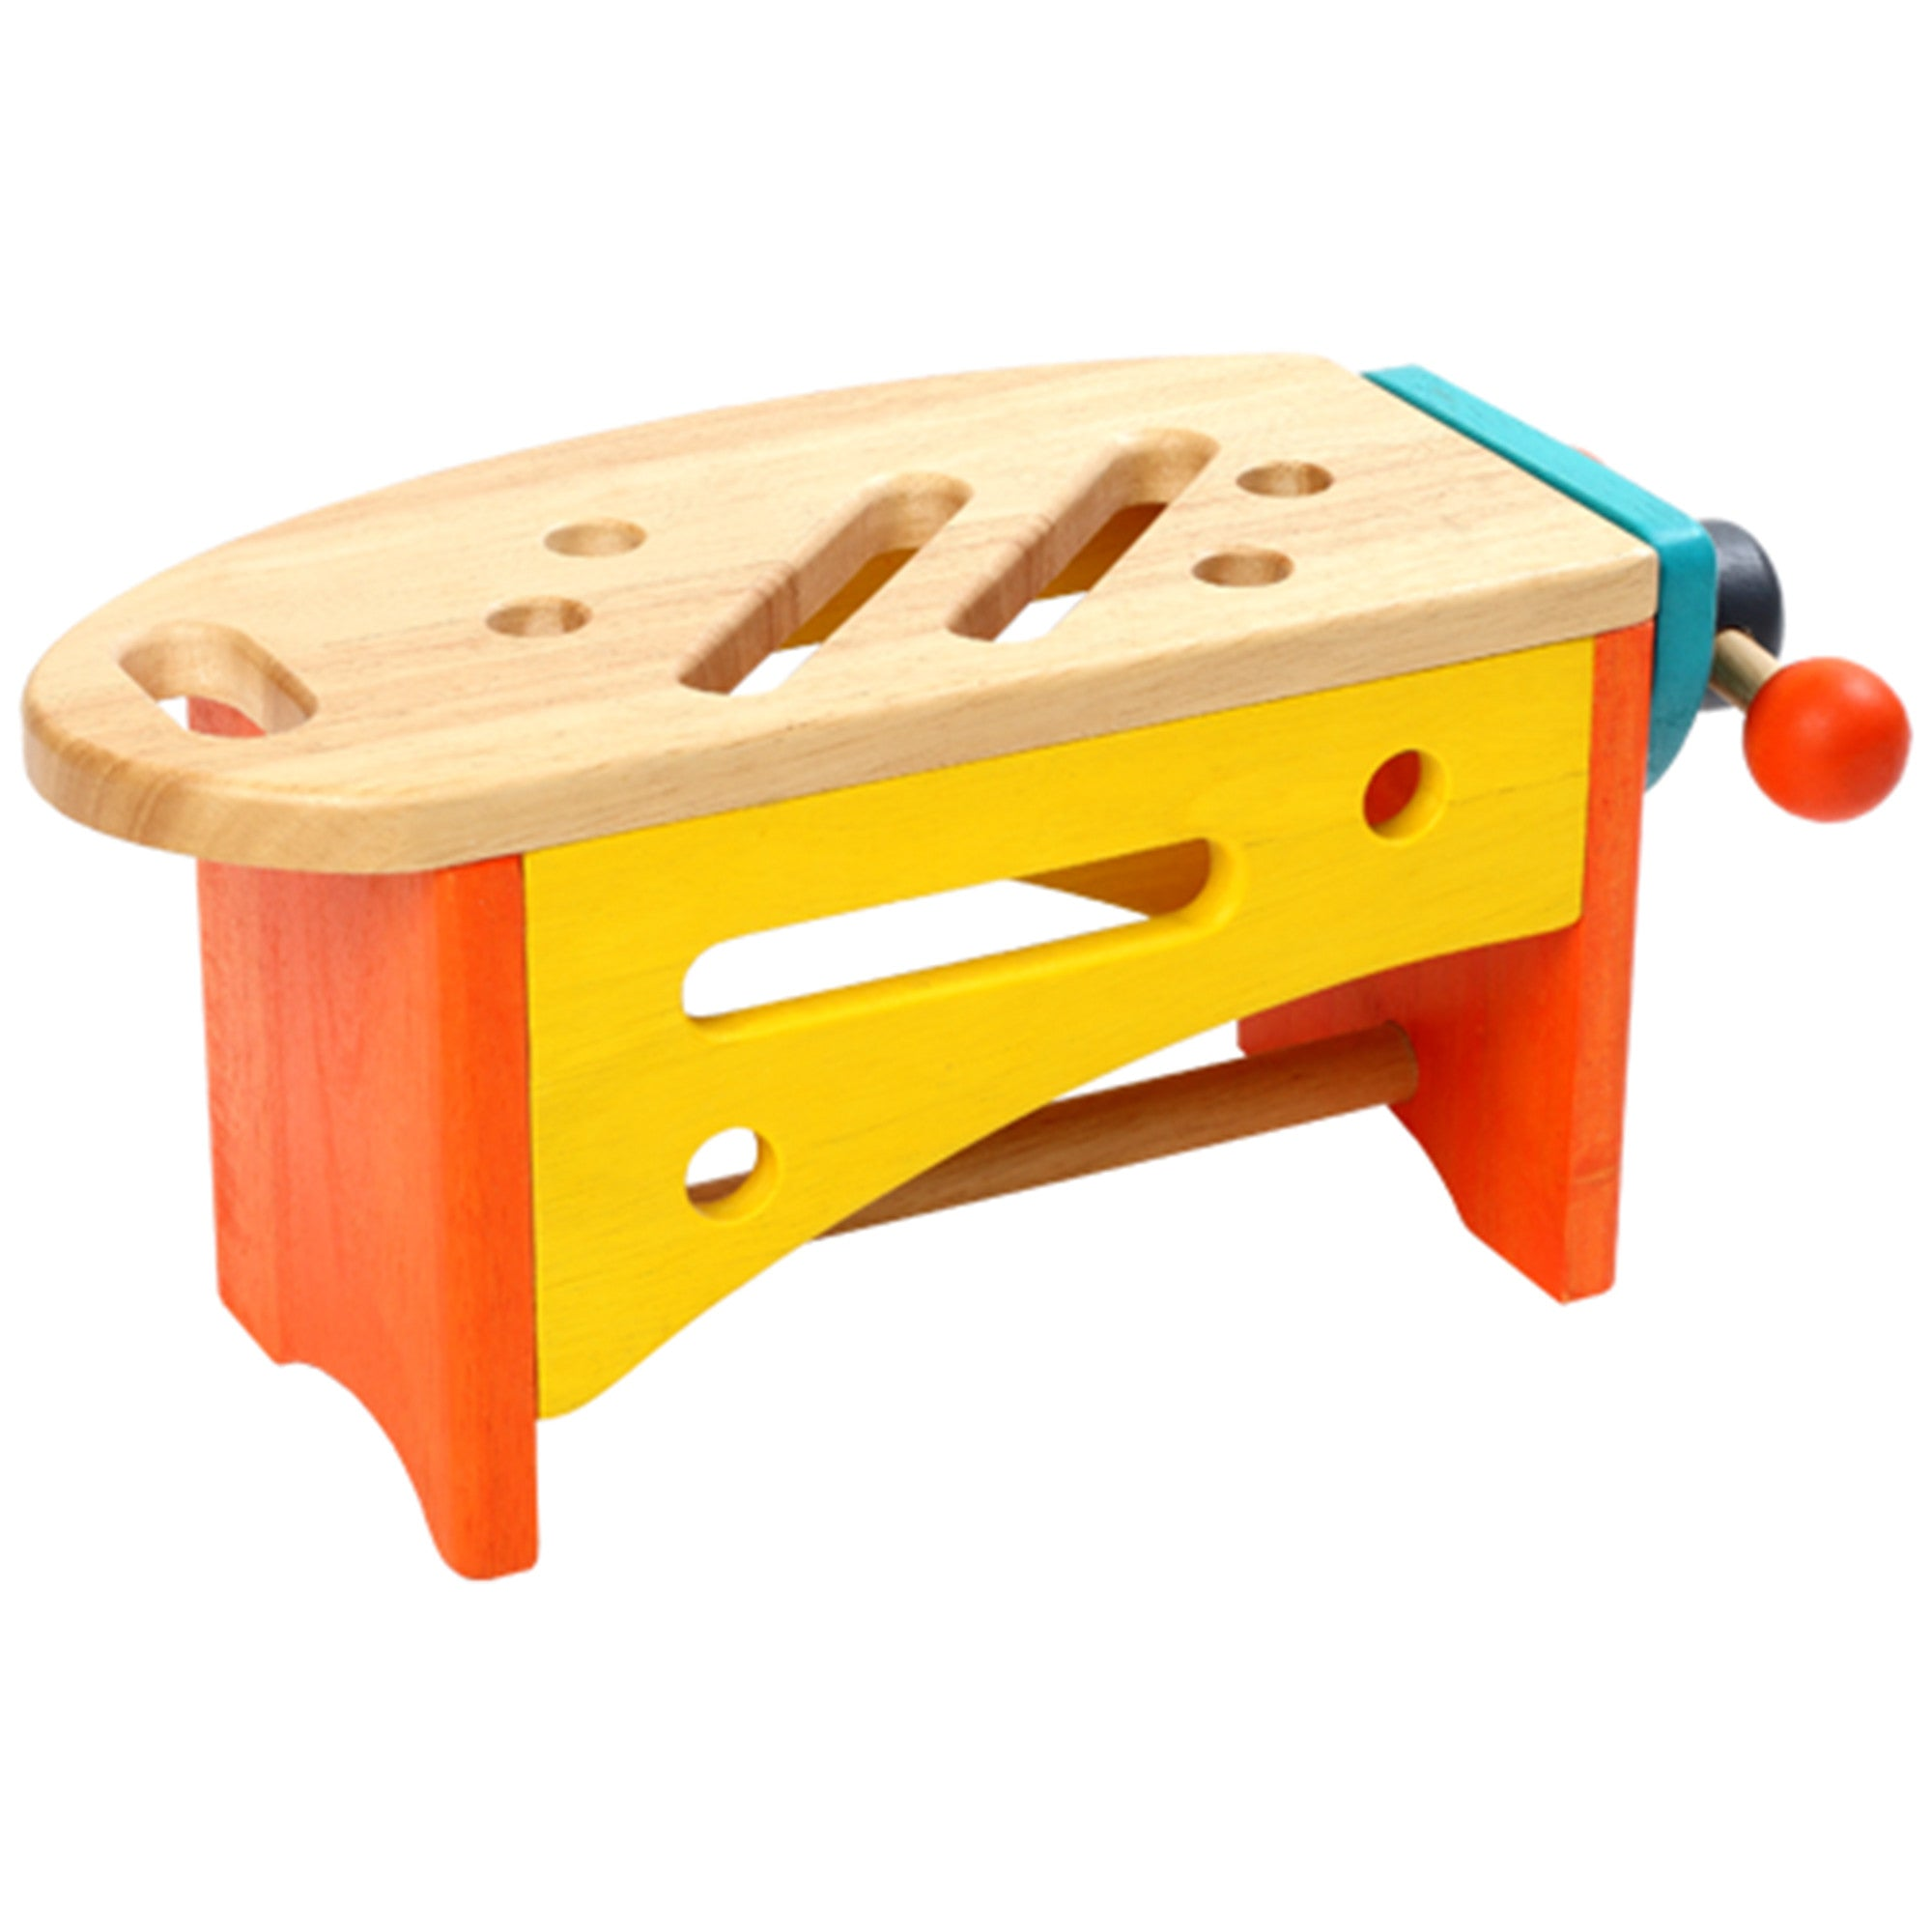 Wooden Toy Tool Set Tool Kit   - Voila - Little Earth Nest - 6